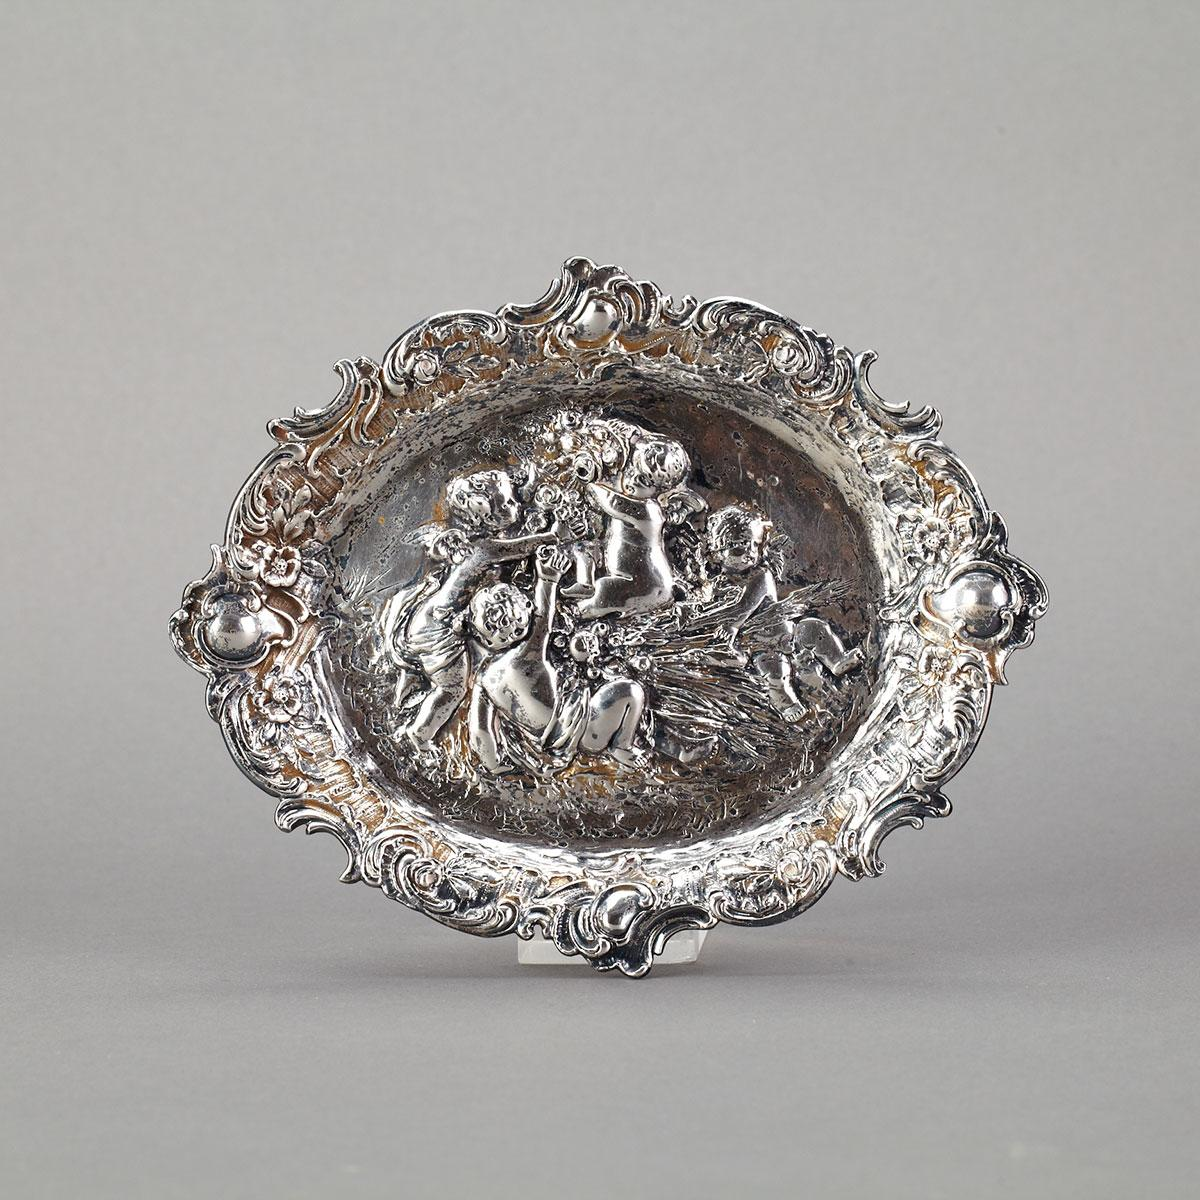 German Silver Small Oval Tray, c.1900